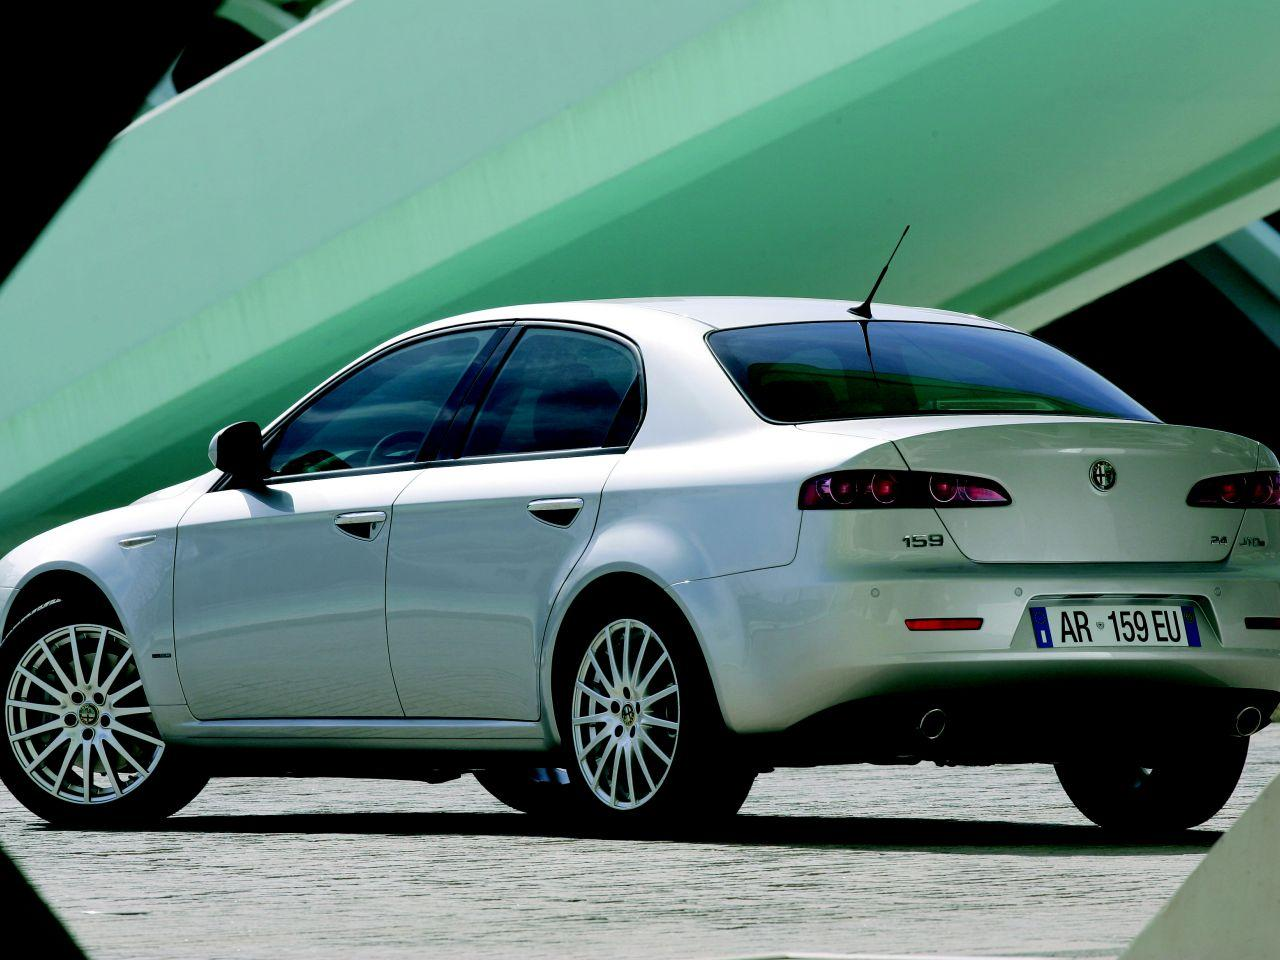 alfa romeo 159 occasion video aankoopadvies